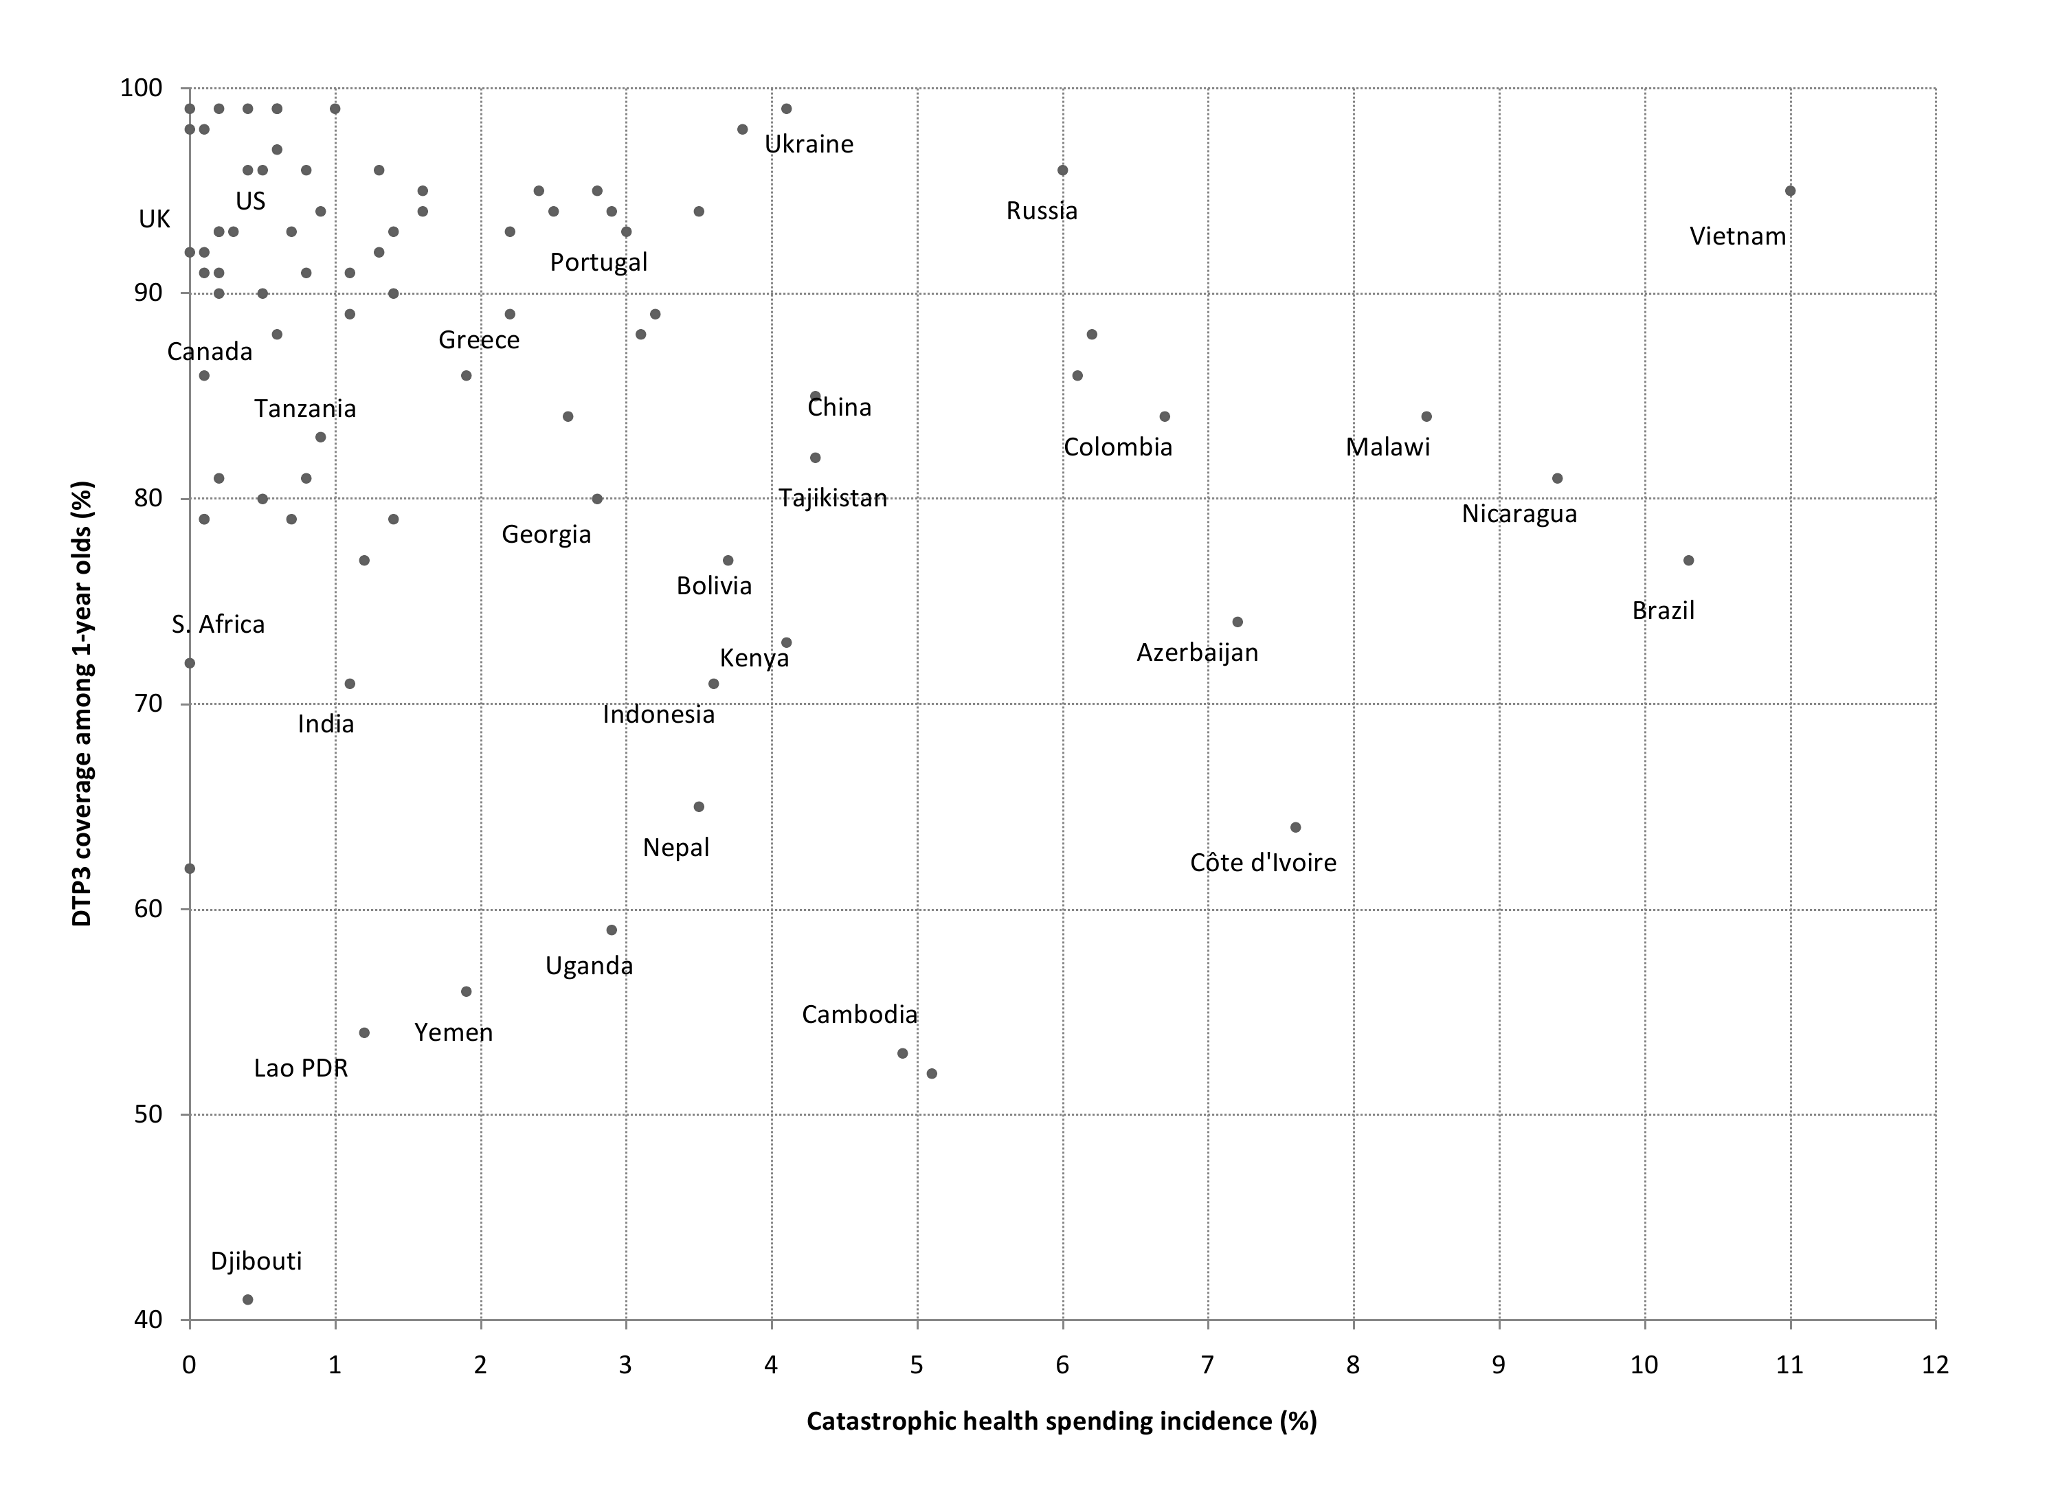 Catastrophic spending incidence and DTP3 immunization coverage among 1-year-olds, 87 countries (various years).